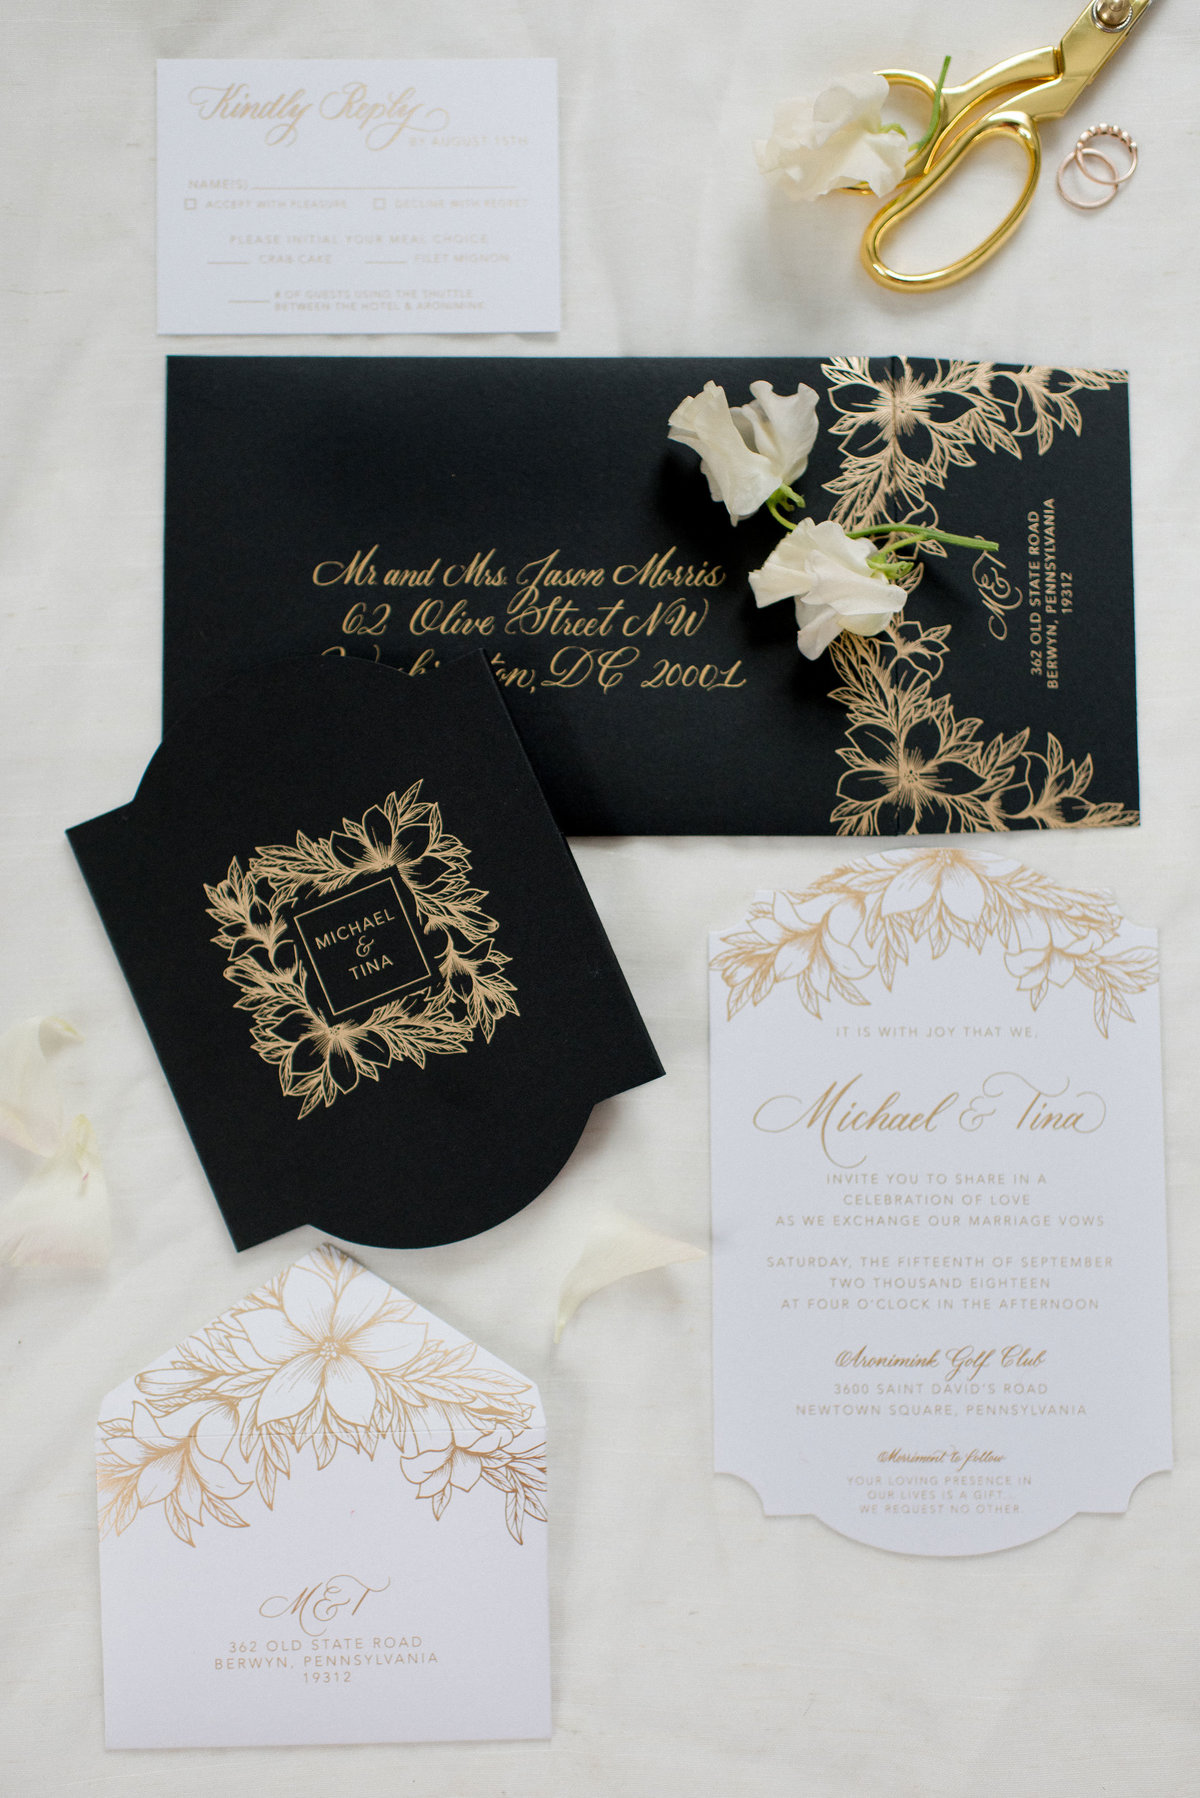 Elegant black, white and gold wedding invitation suite